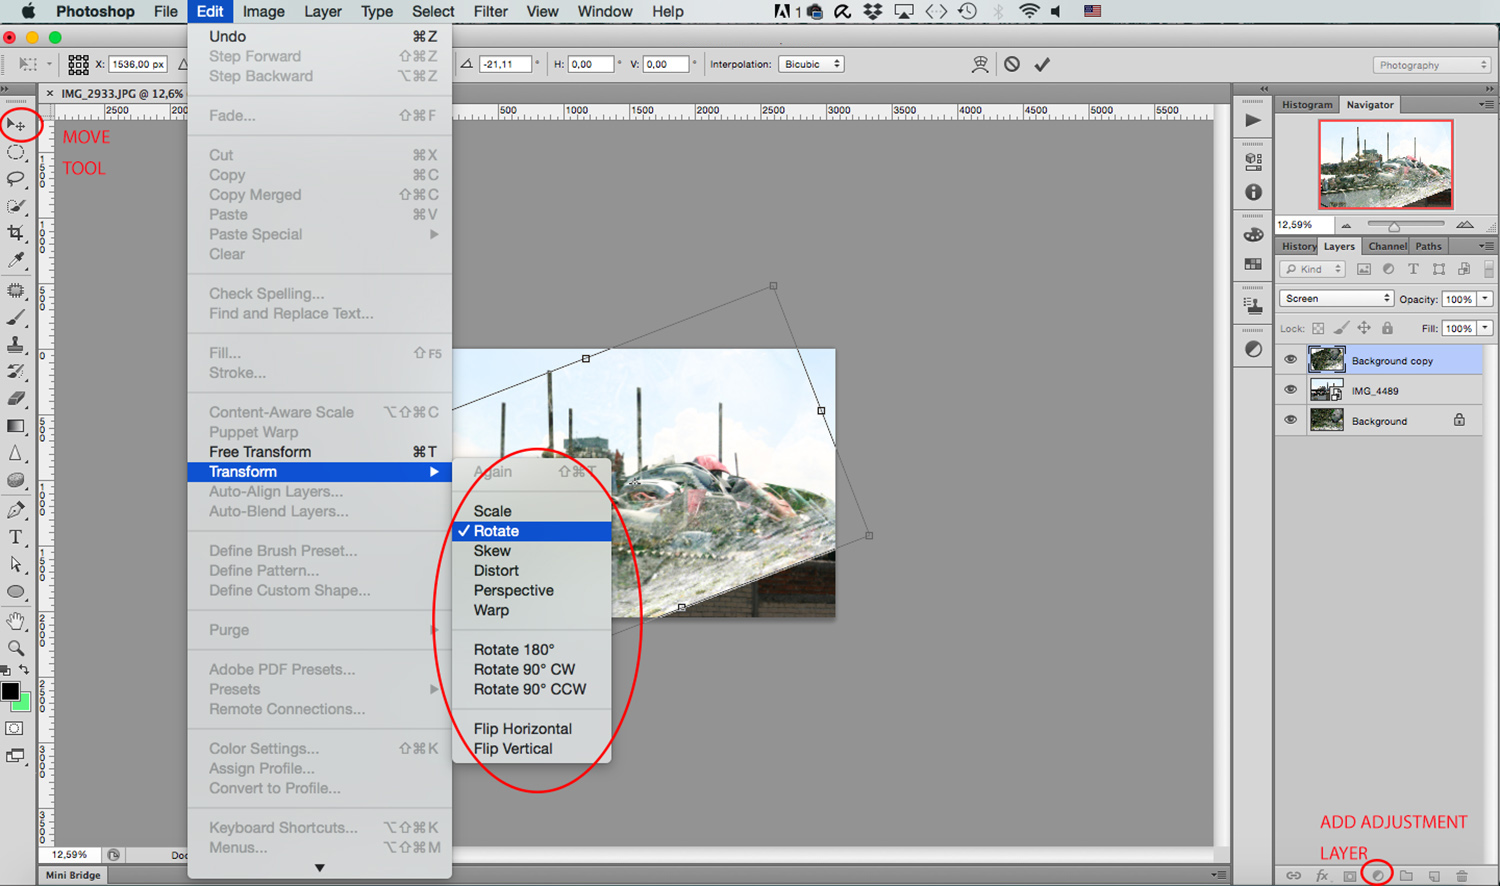 transform - How to Create a Multiple Exposure Effect in Photoshop